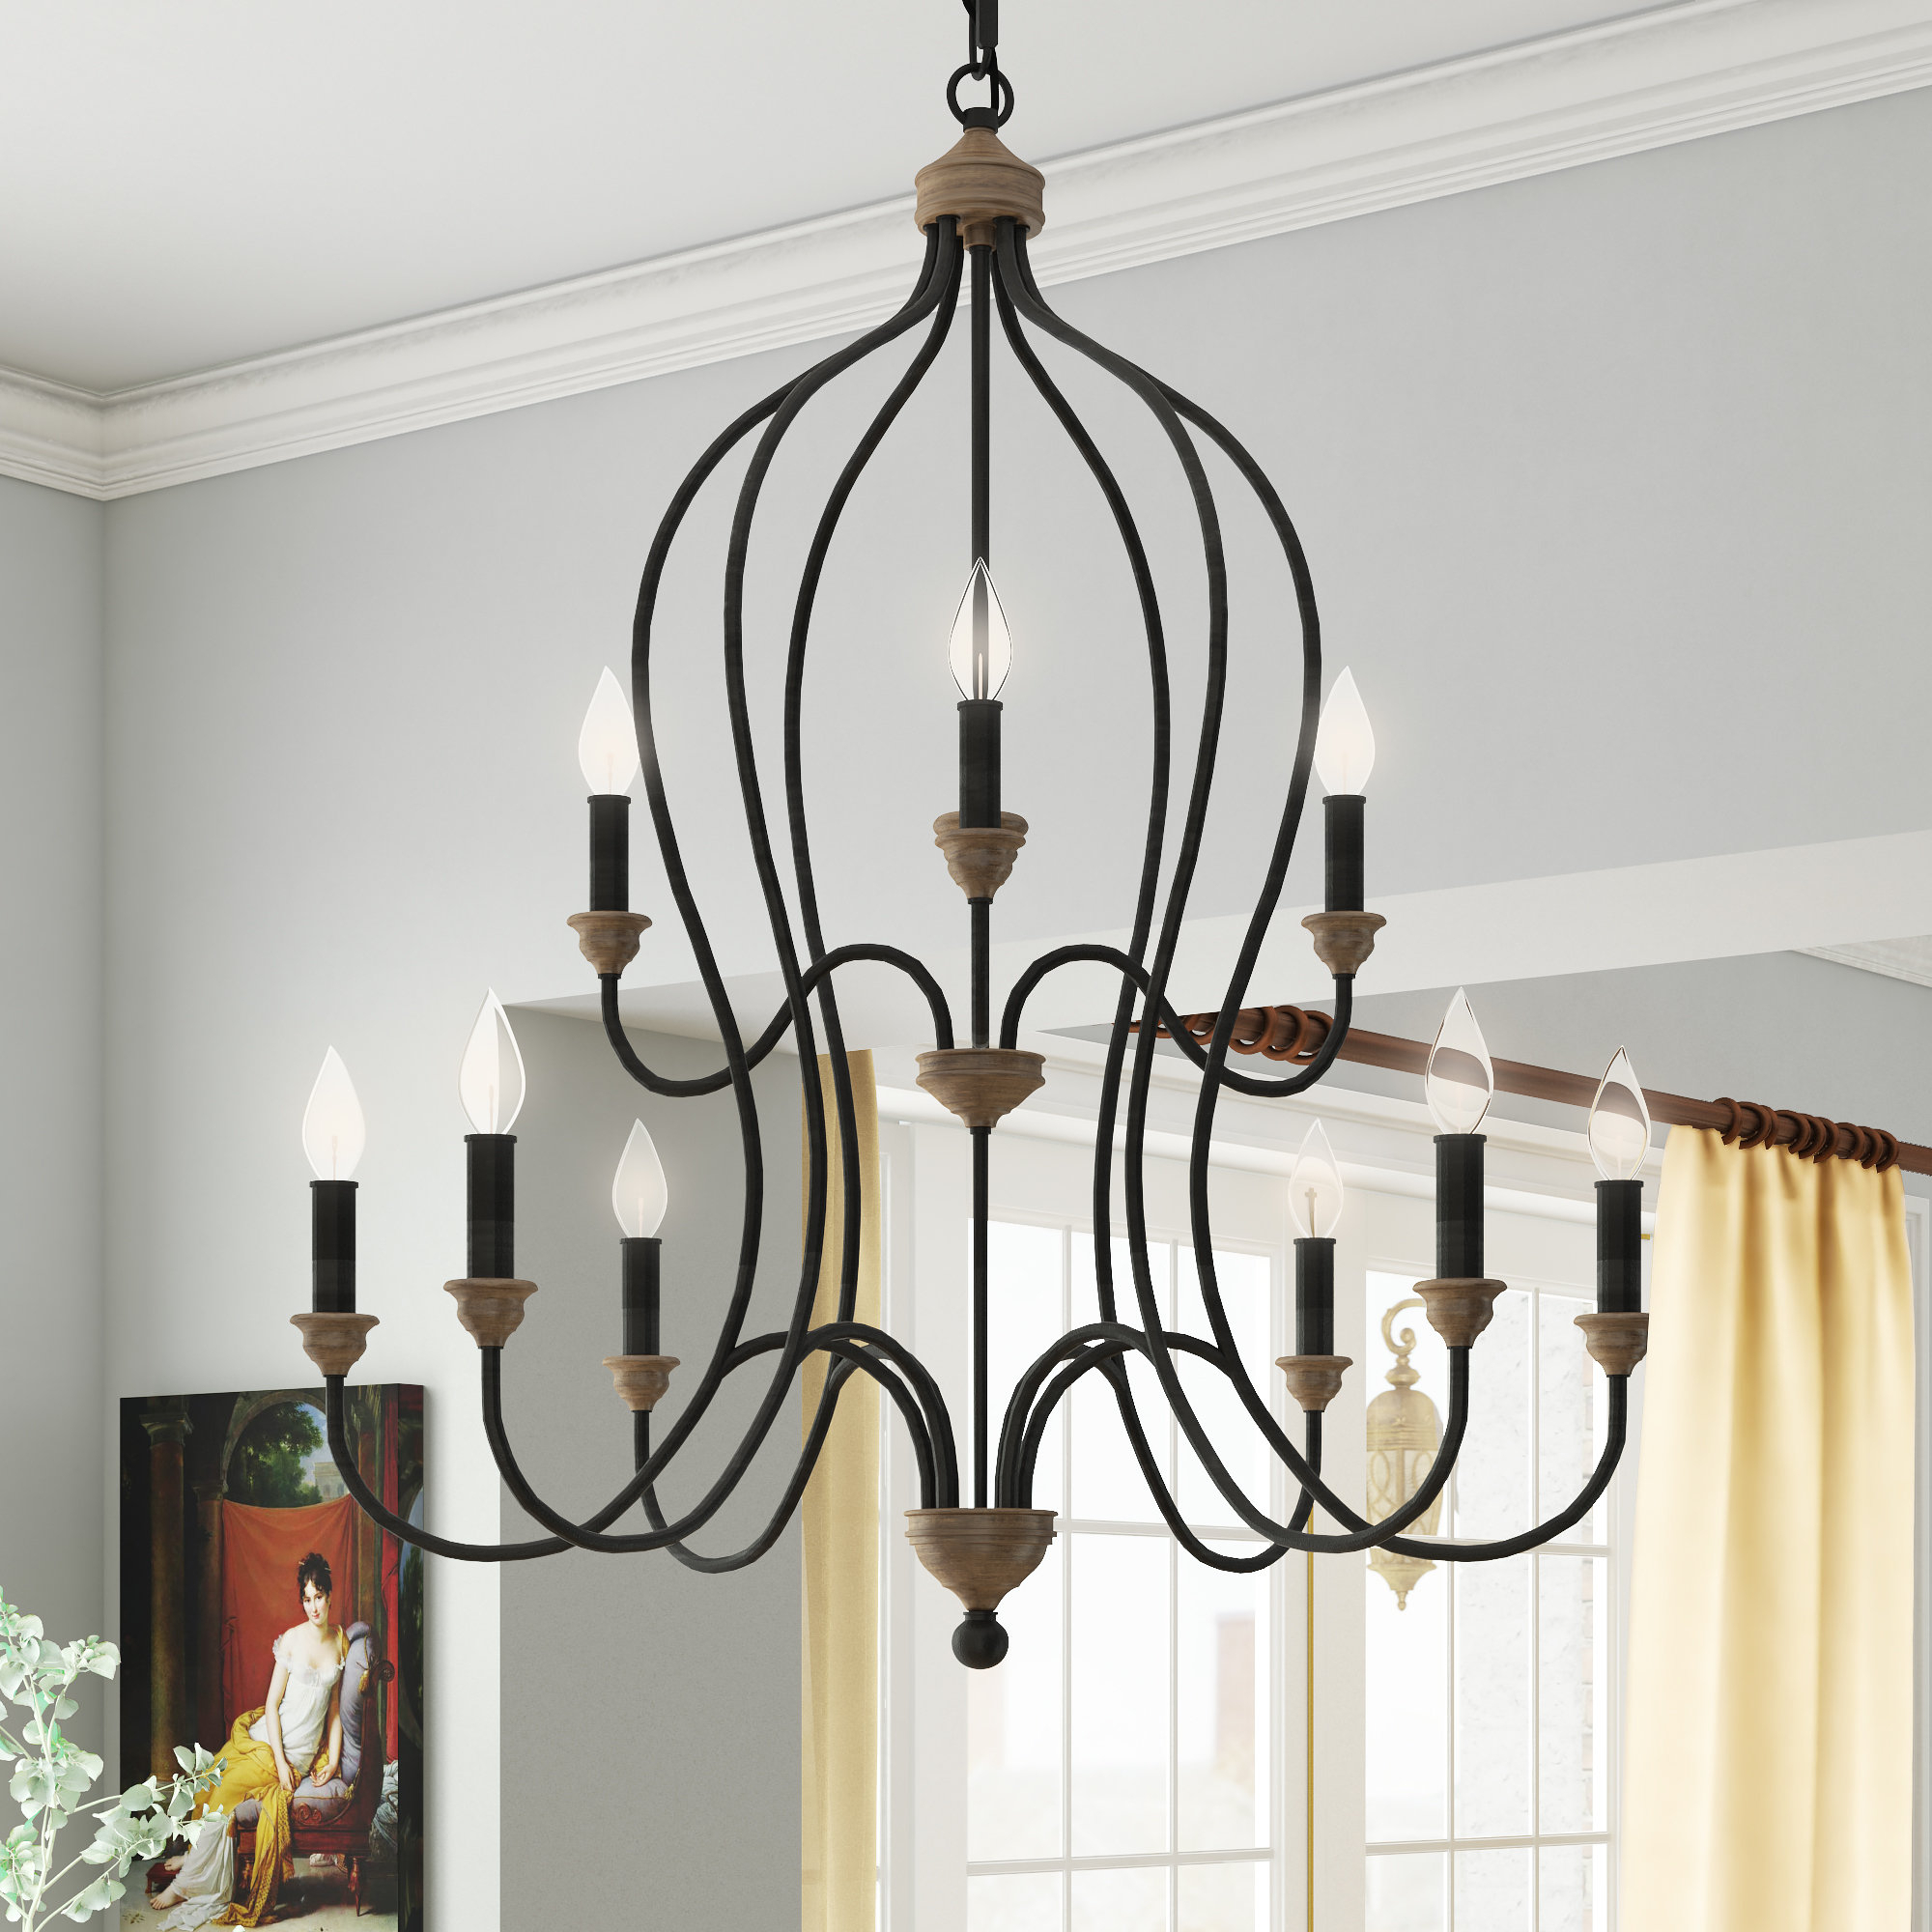 Watford 9 Light Candle Style Chandeliers In Famous Sundberg 9 Light Candle Style Chandelier (Gallery 6 of 20)